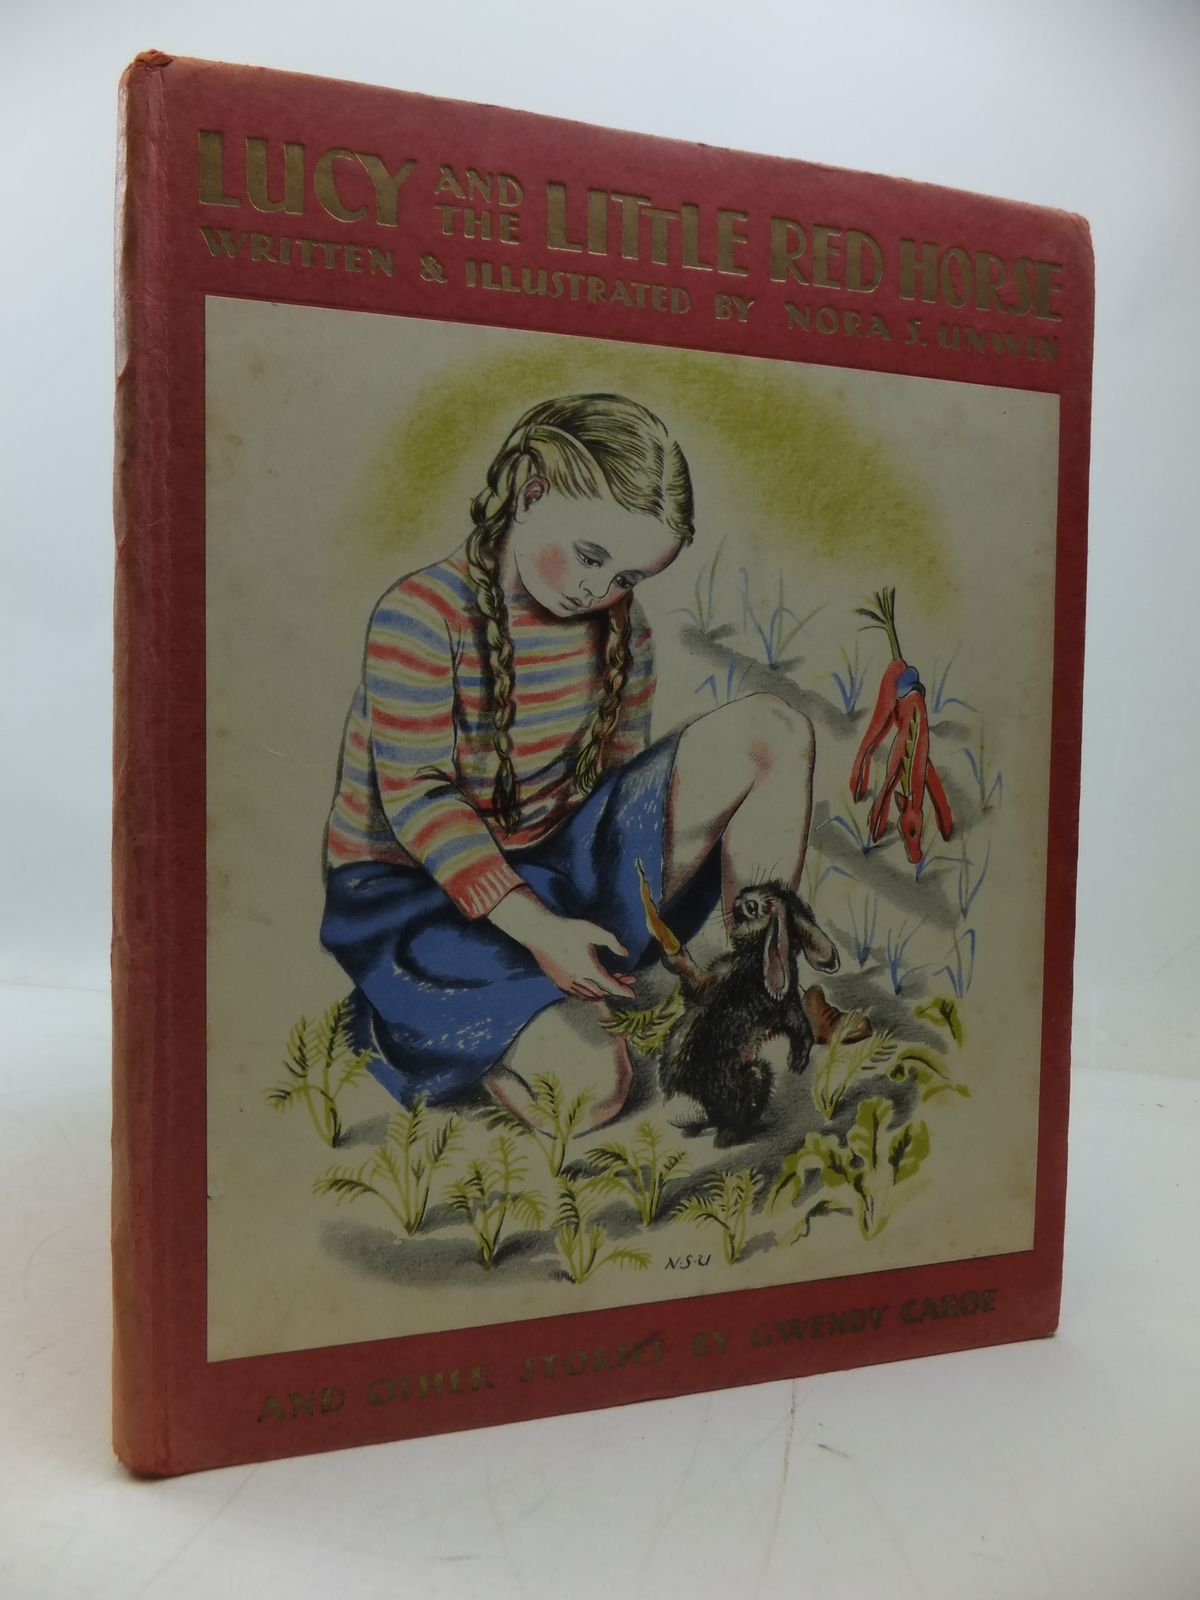 Photo of LUCY AND THE LITTLE RED HORSE AND OTHER STORIES written by Unwin, Nora S. Caroe, Gwendy illustrated by Unwin, Nora published by Alexander Moring Ltd. (STOCK CODE: 1108839)  for sale by Stella & Rose's Books